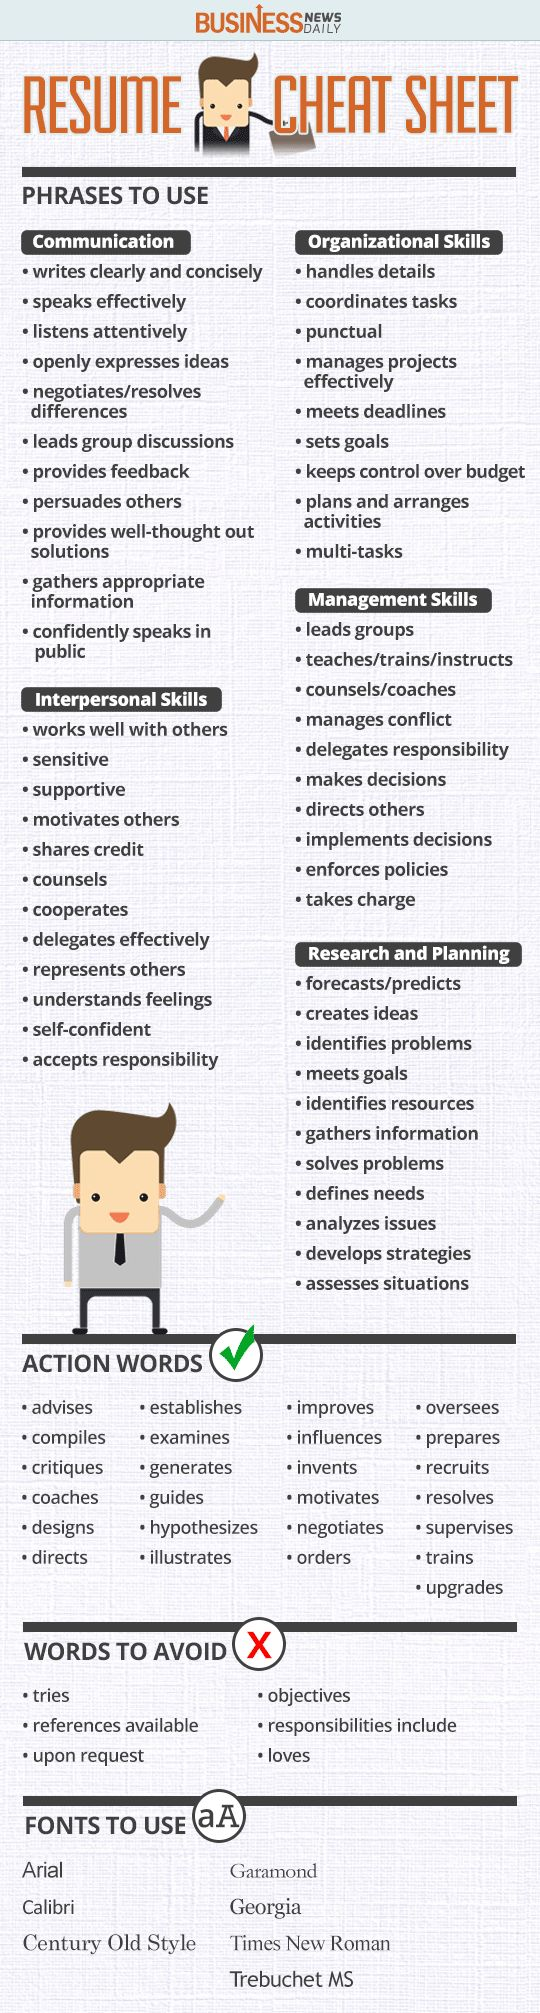 Opposenewapstandardsus  Outstanding  Ideas About Resume On Pinterest  Cv Format Resume Cv And  With Magnificent Resume Cheat Sheet Infographic Andrews Almost Done With A Complete Unit On Employment Which With Nice Free Resume Template Download For Word Also Salon Manager Resume In Addition Data Architect Resume And Sales Associate Resume Examples As Well As Best Resume Website Additionally Key Words For Resume From Pinterestcom With Opposenewapstandardsus  Magnificent  Ideas About Resume On Pinterest  Cv Format Resume Cv And  With Nice Resume Cheat Sheet Infographic Andrews Almost Done With A Complete Unit On Employment Which And Outstanding Free Resume Template Download For Word Also Salon Manager Resume In Addition Data Architect Resume From Pinterestcom